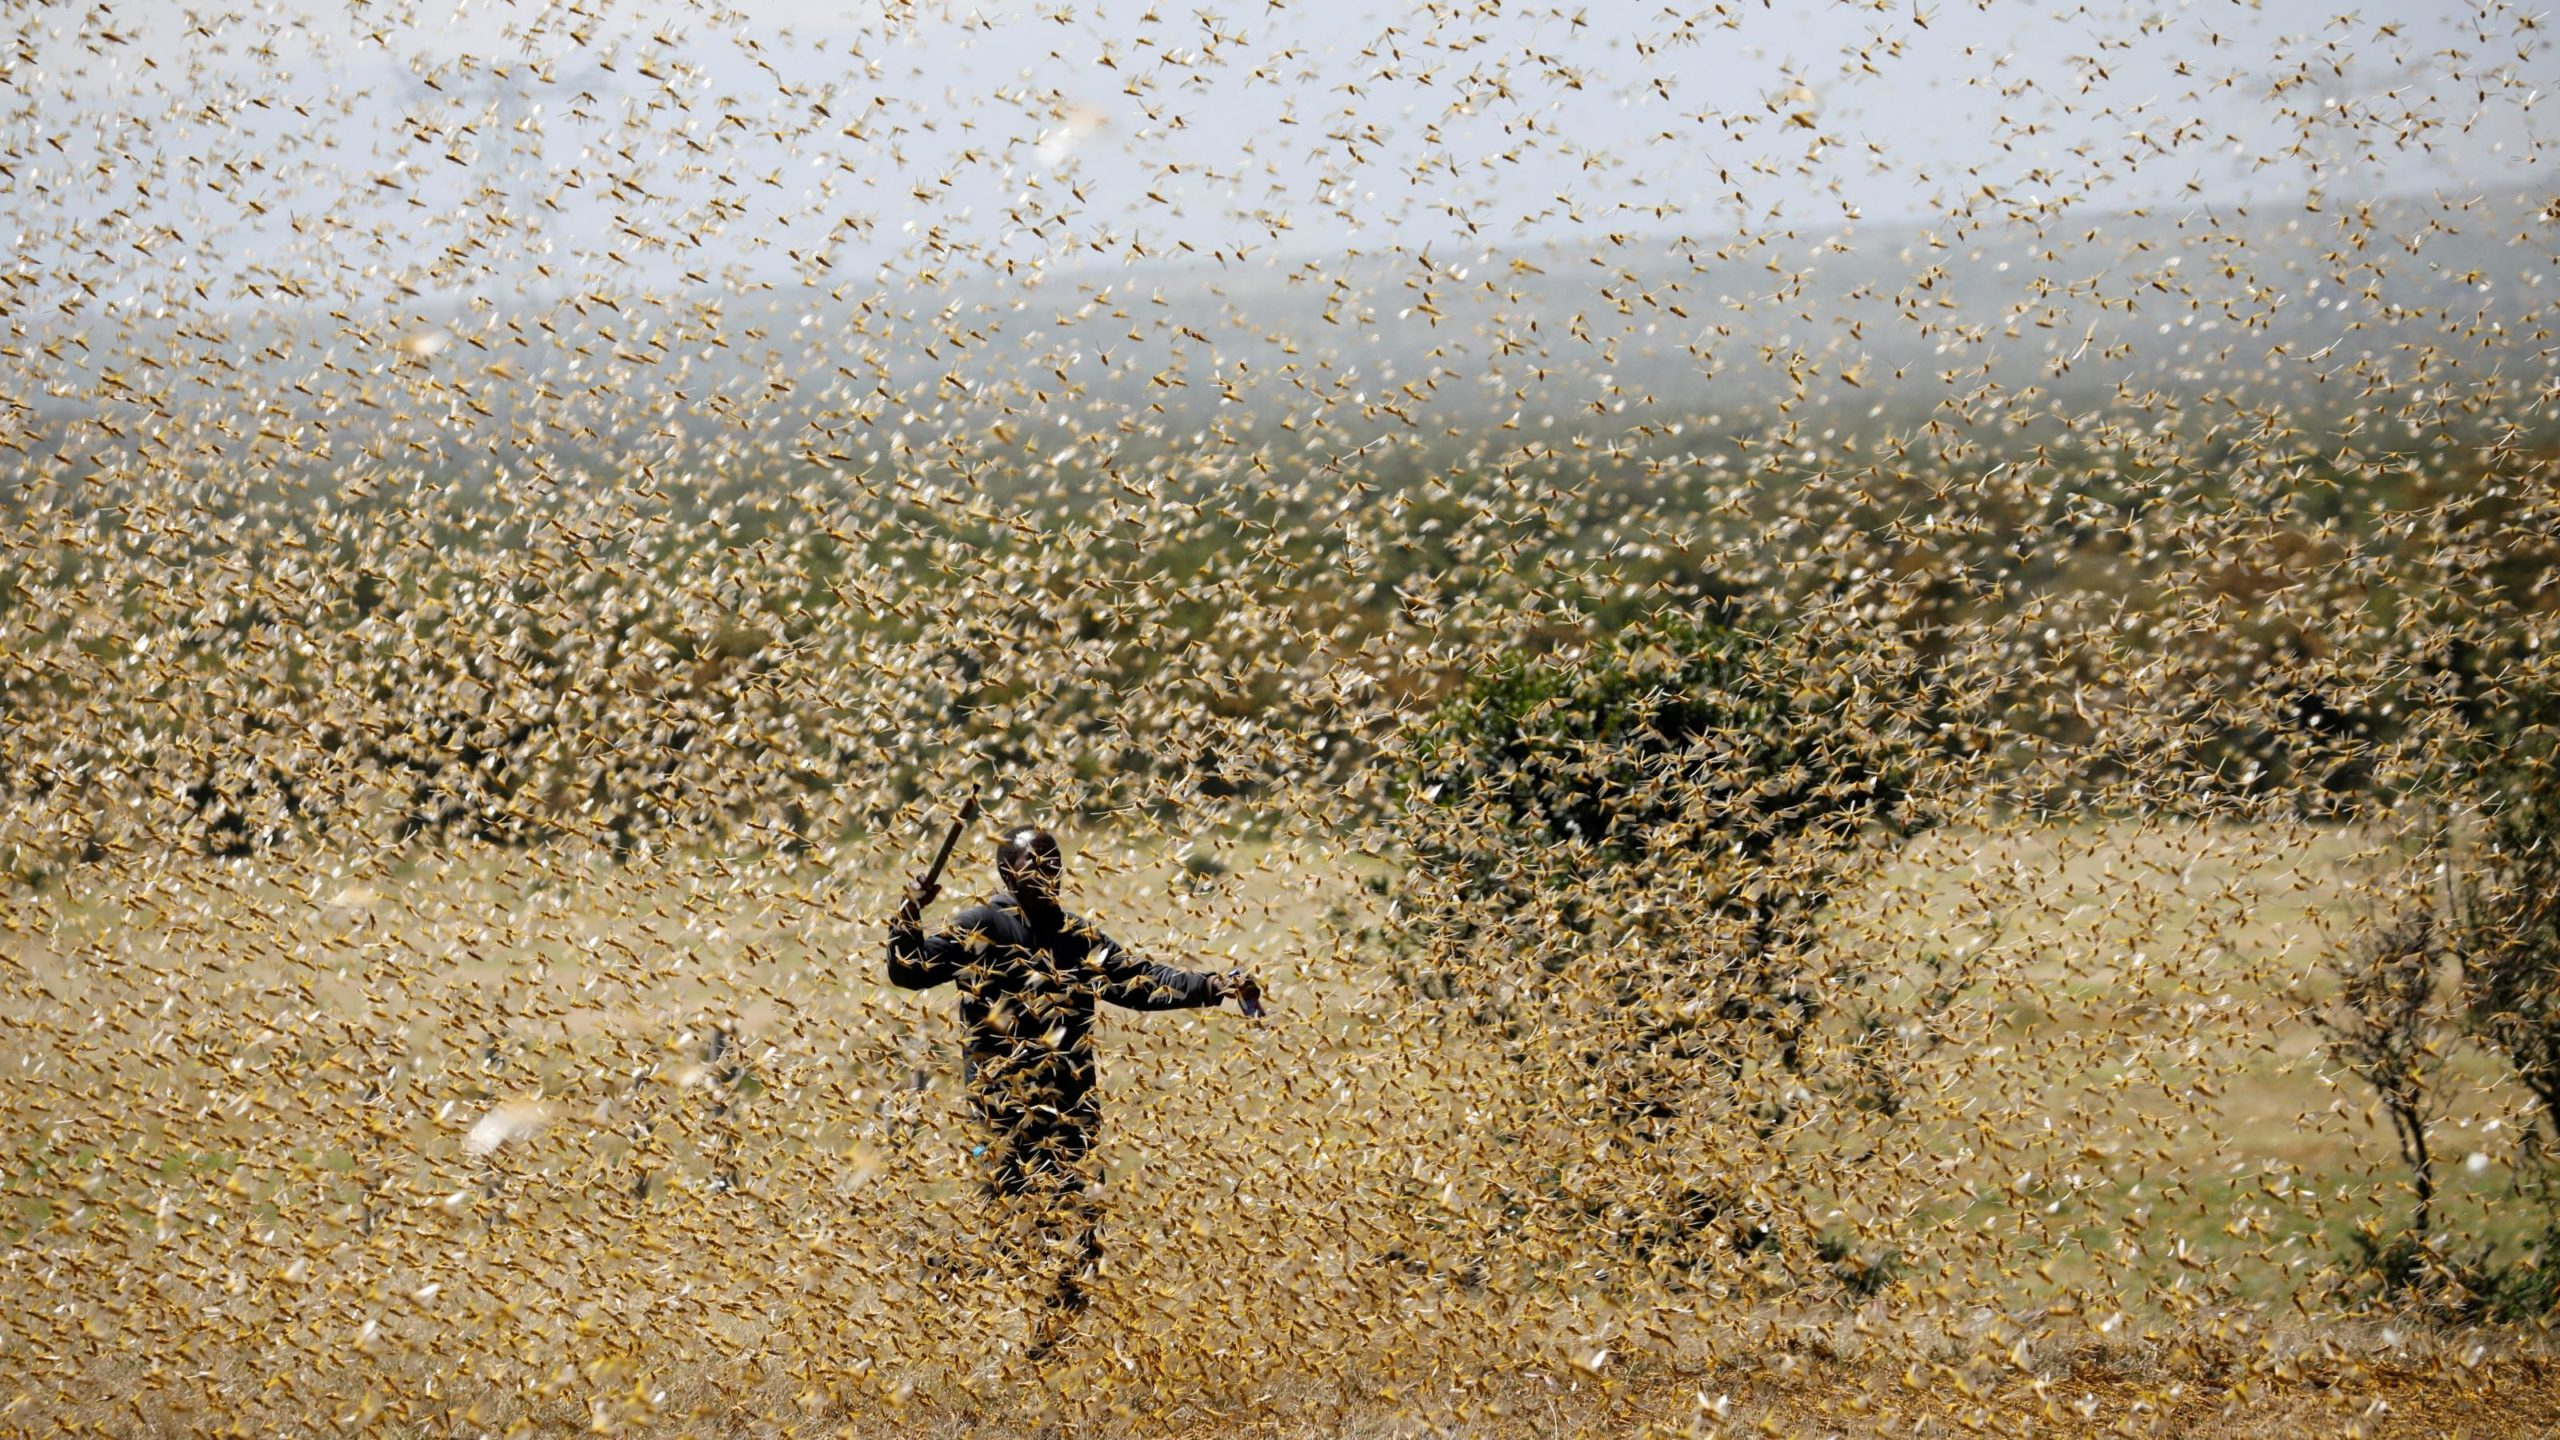 Two new generations of locusts are set to descend on East Africa again—400 times stronger – Quartz (image)